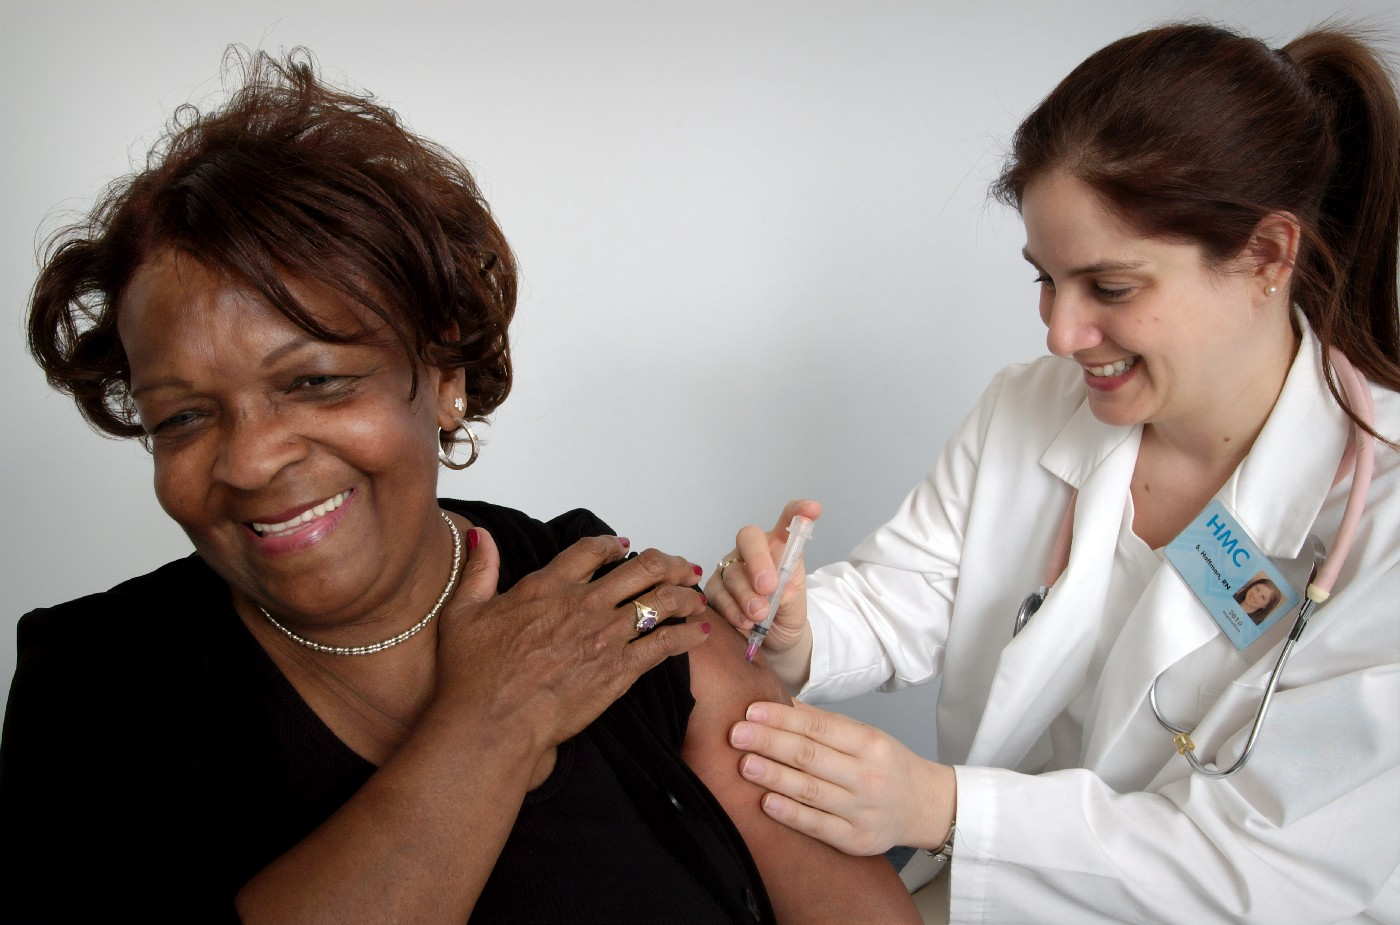 A healthcare professional administers a vaccine dose to a female patient.